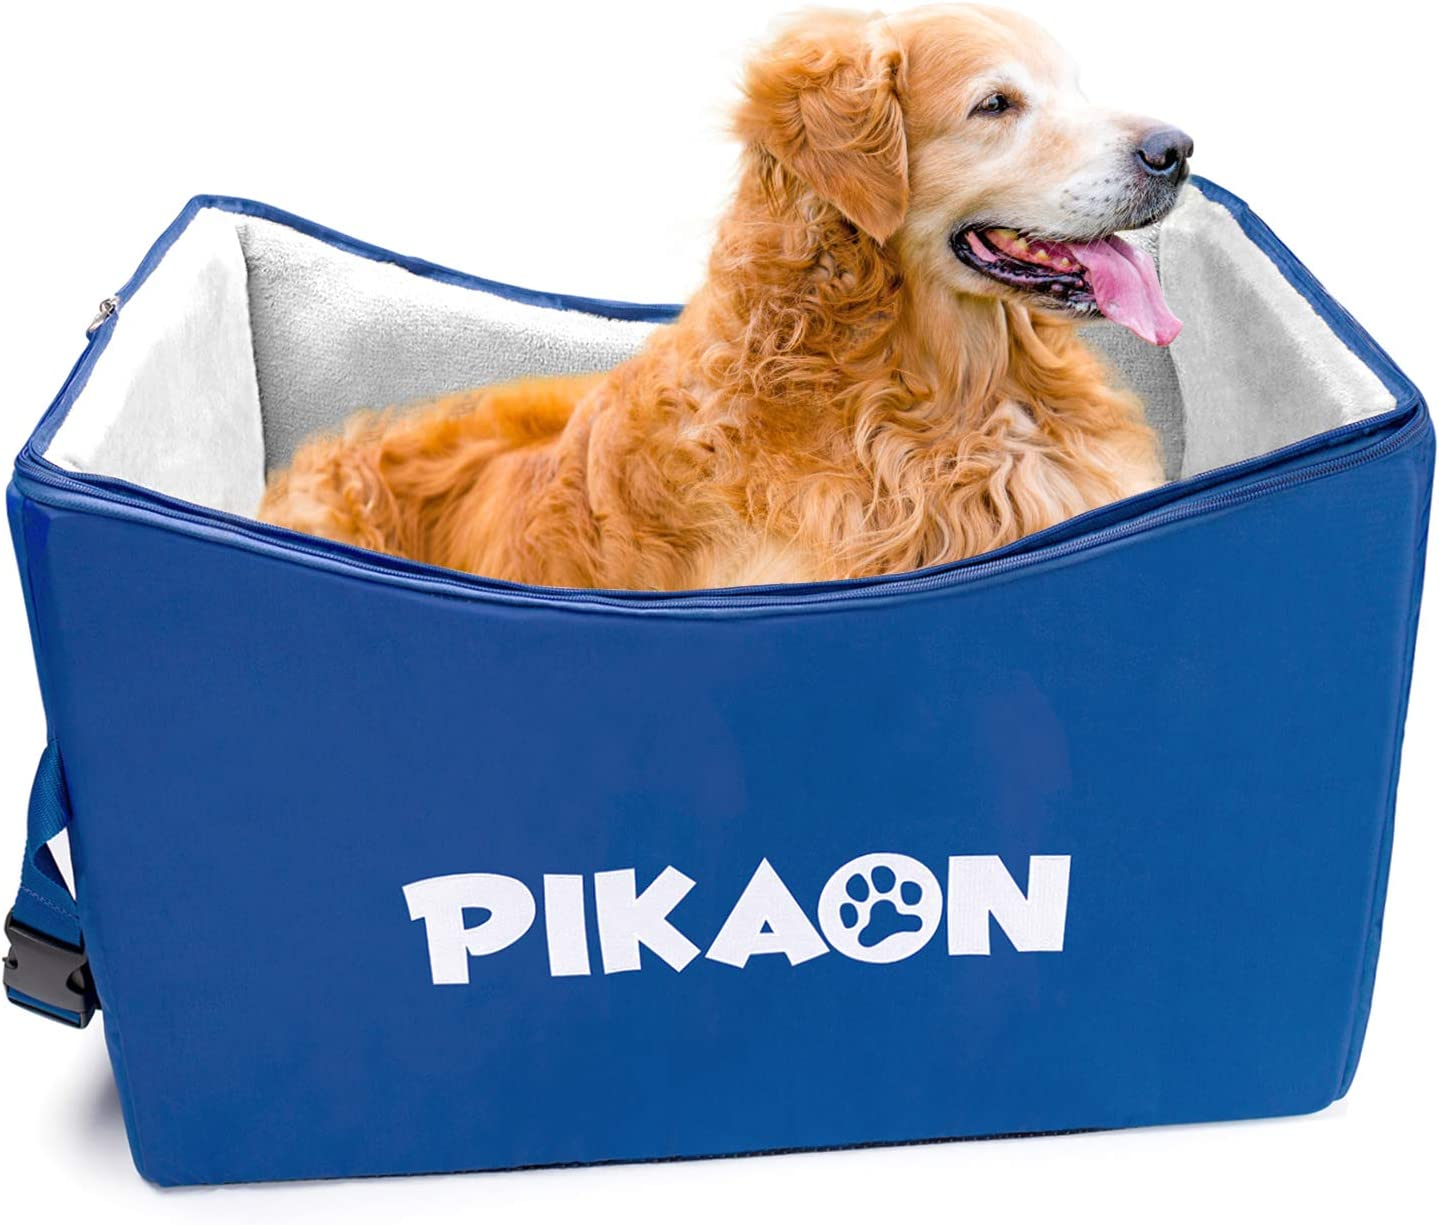 Pikaon Dog Booster Car Seat, Safety Upgraded Pet Lookout Seat, Cold and Hot Weather Use